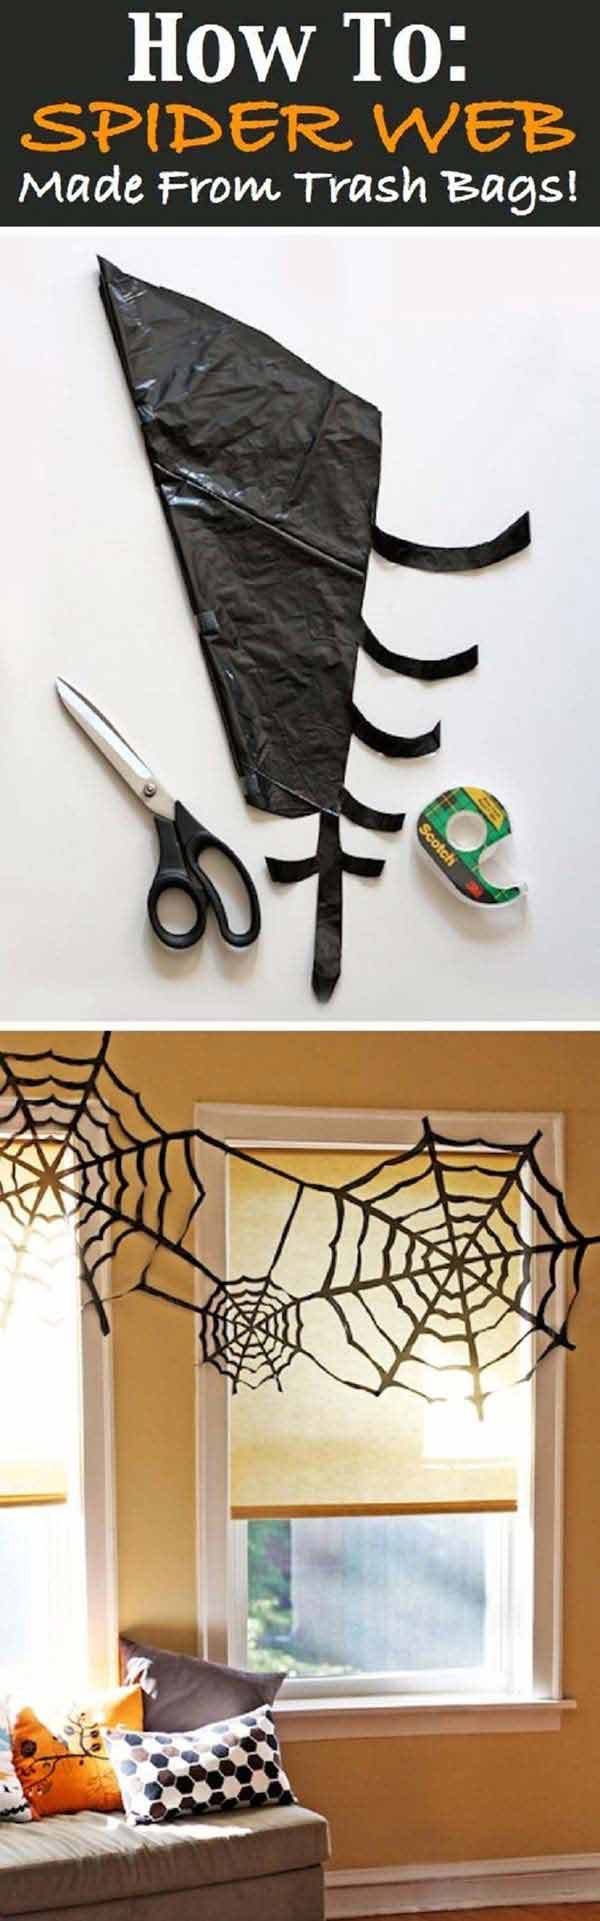 last-minute-halloween-crafts-18